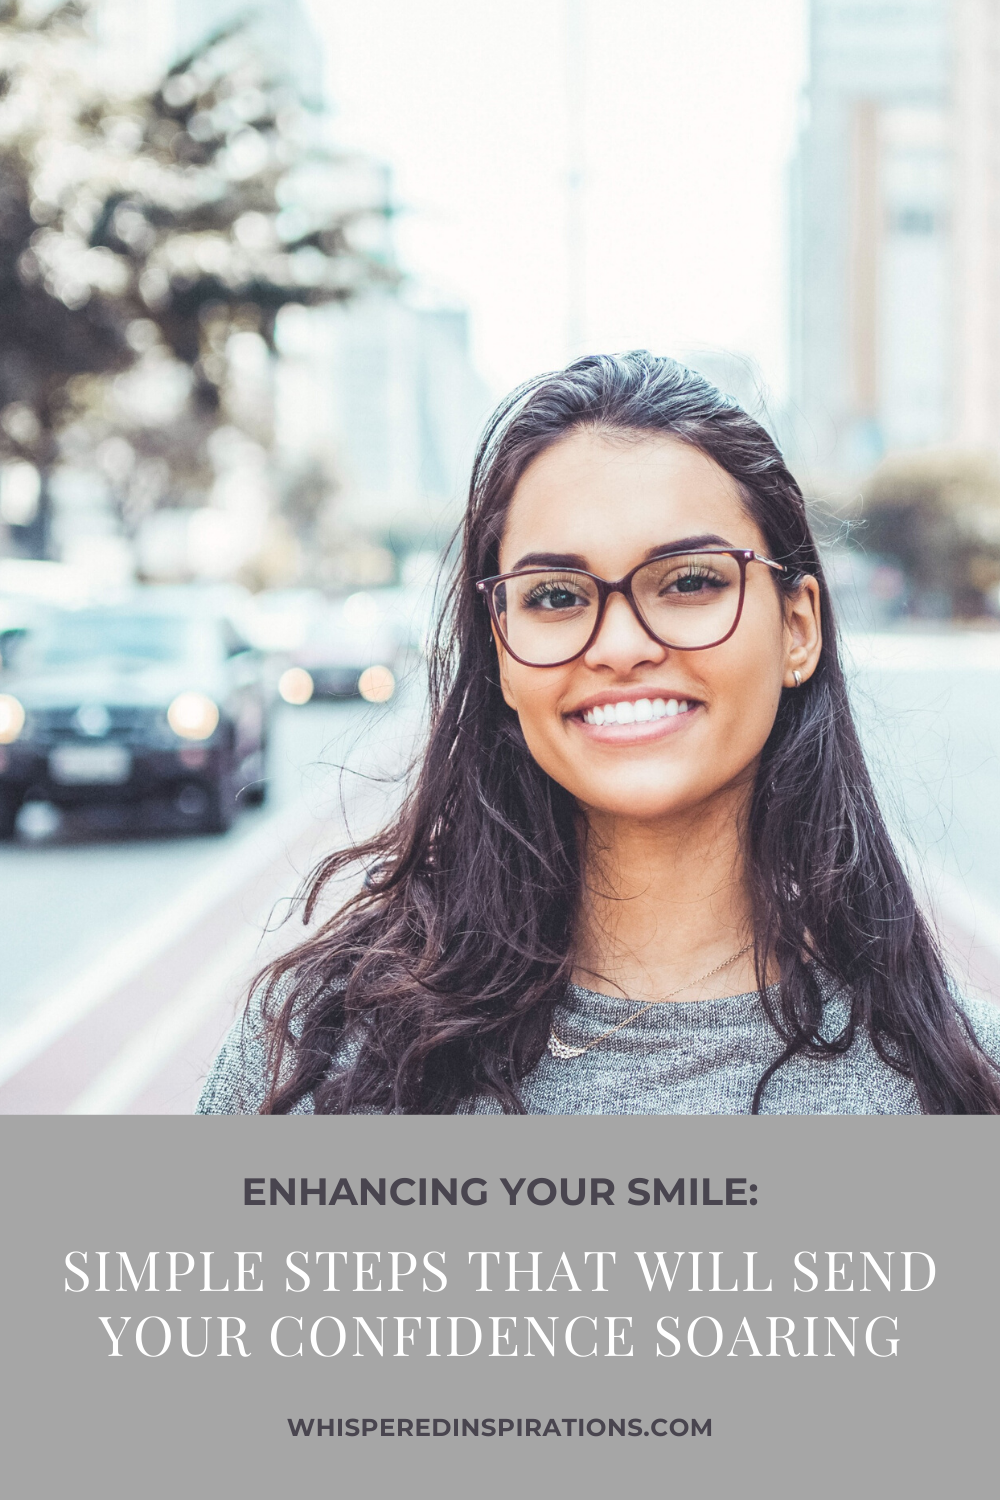 """A woman stands on a busy street and smiles. She is wearing glasses and has a beautiful smile. A banner reads, """"Enhancing Your Smile: Simple Steps That Will Send Your Confidence Soaring."""""""